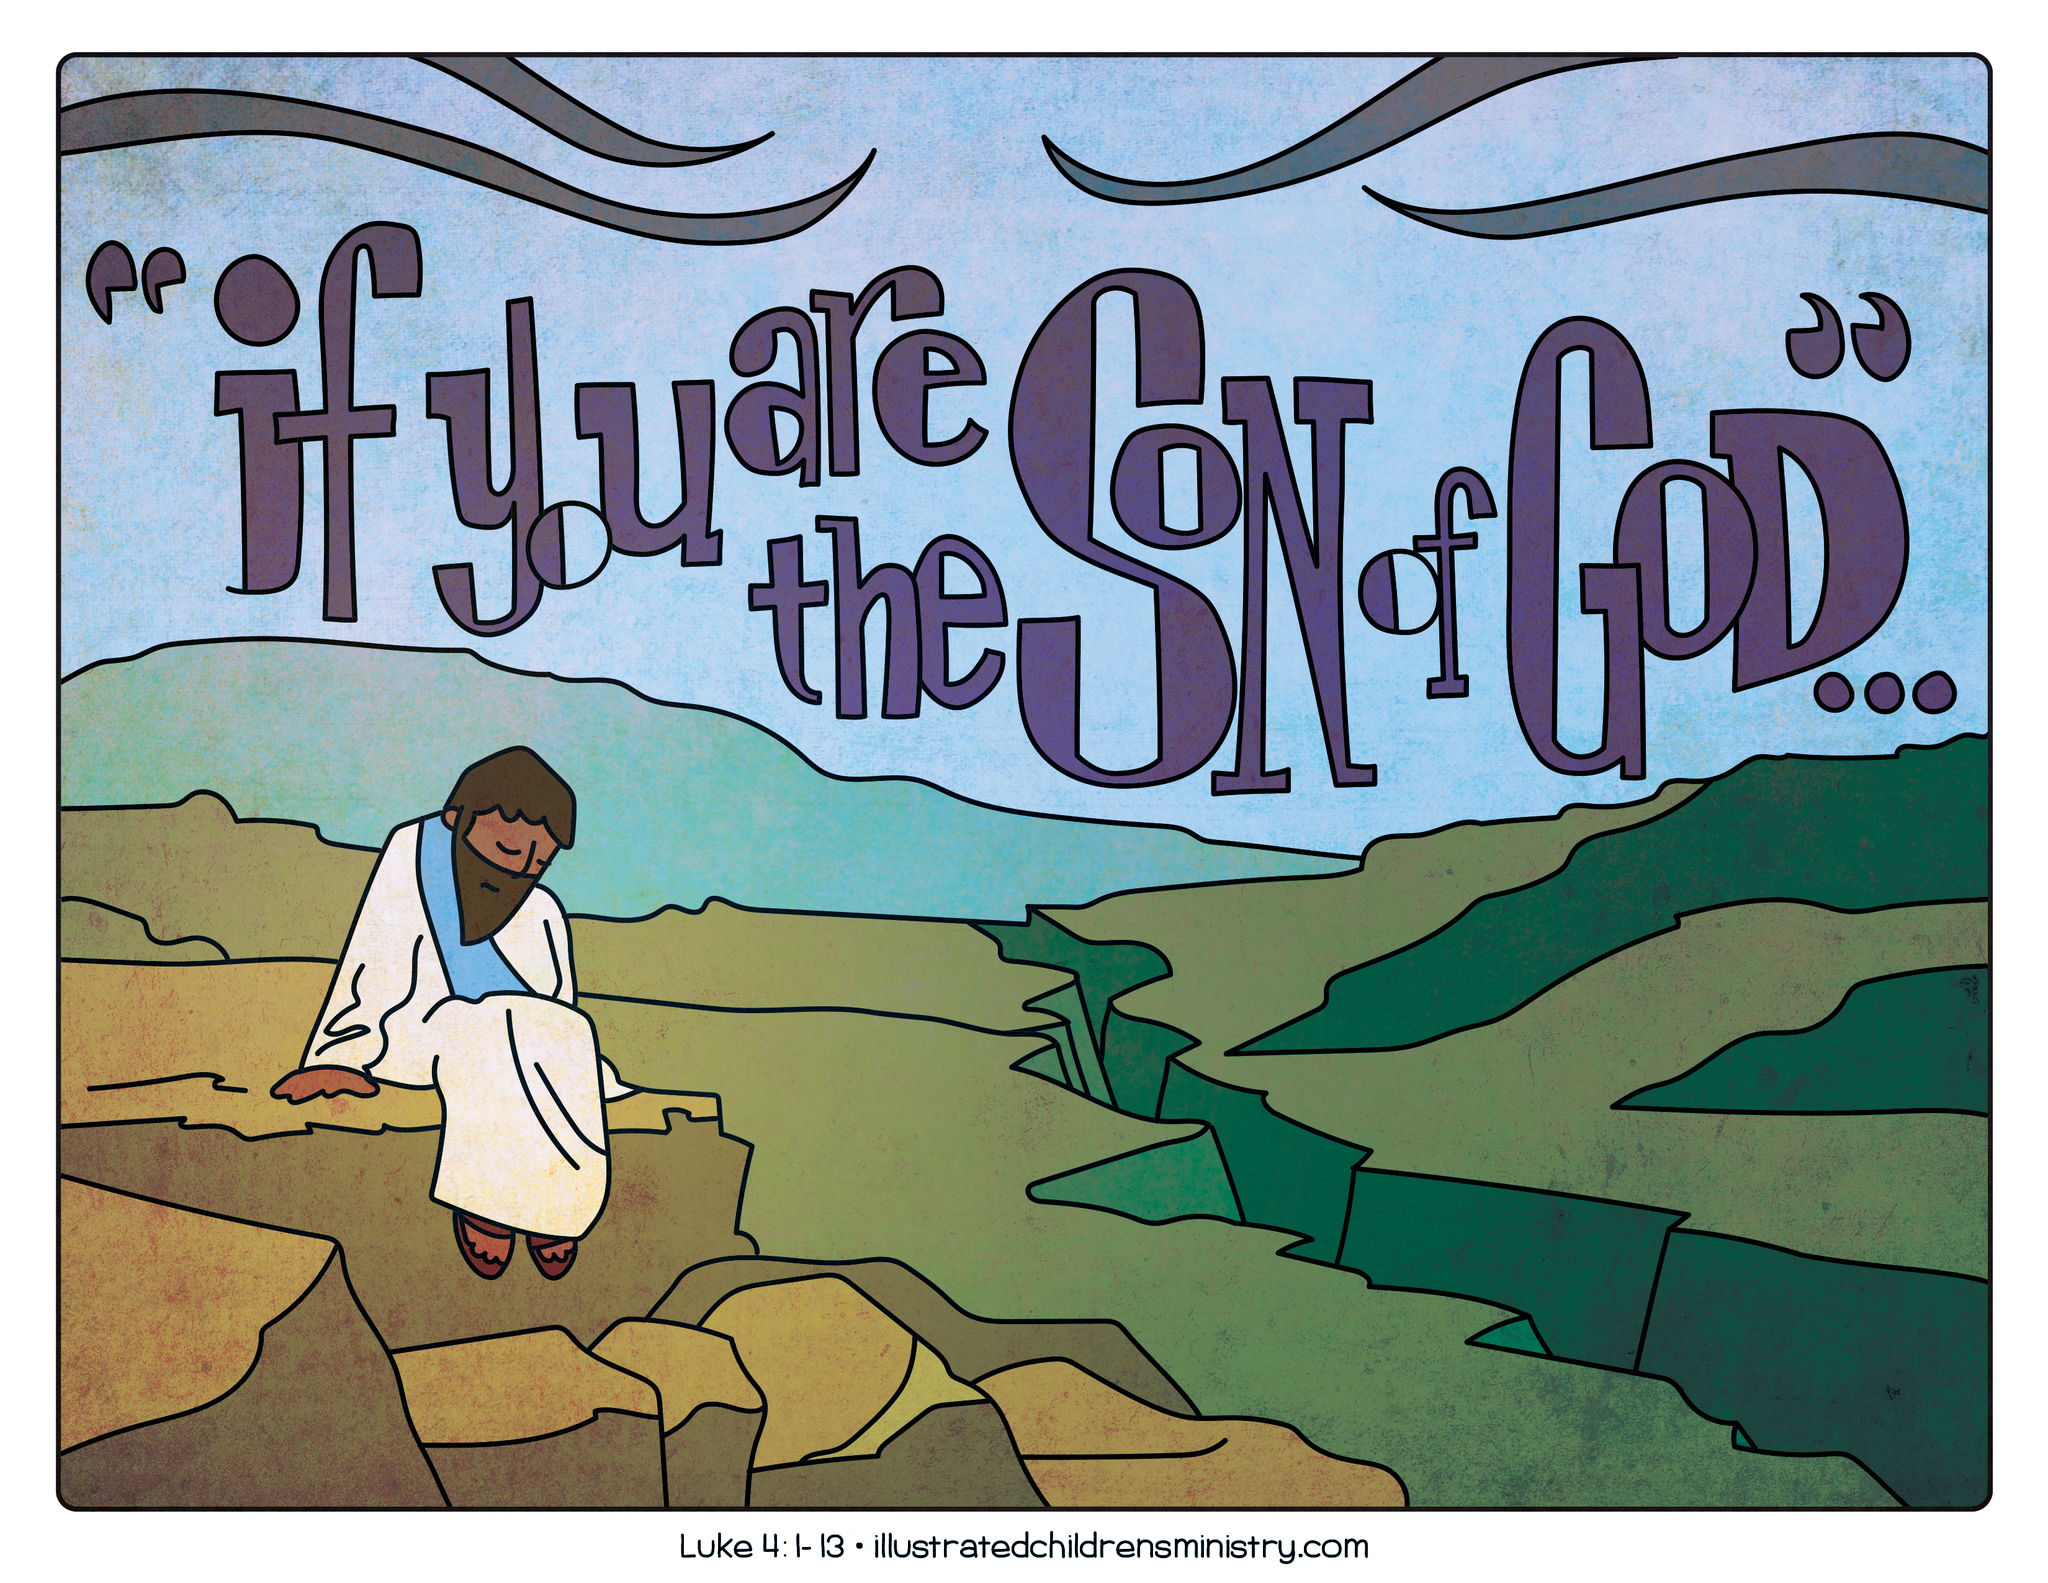 Illustration to accompany children's moment - Jesus in the desert